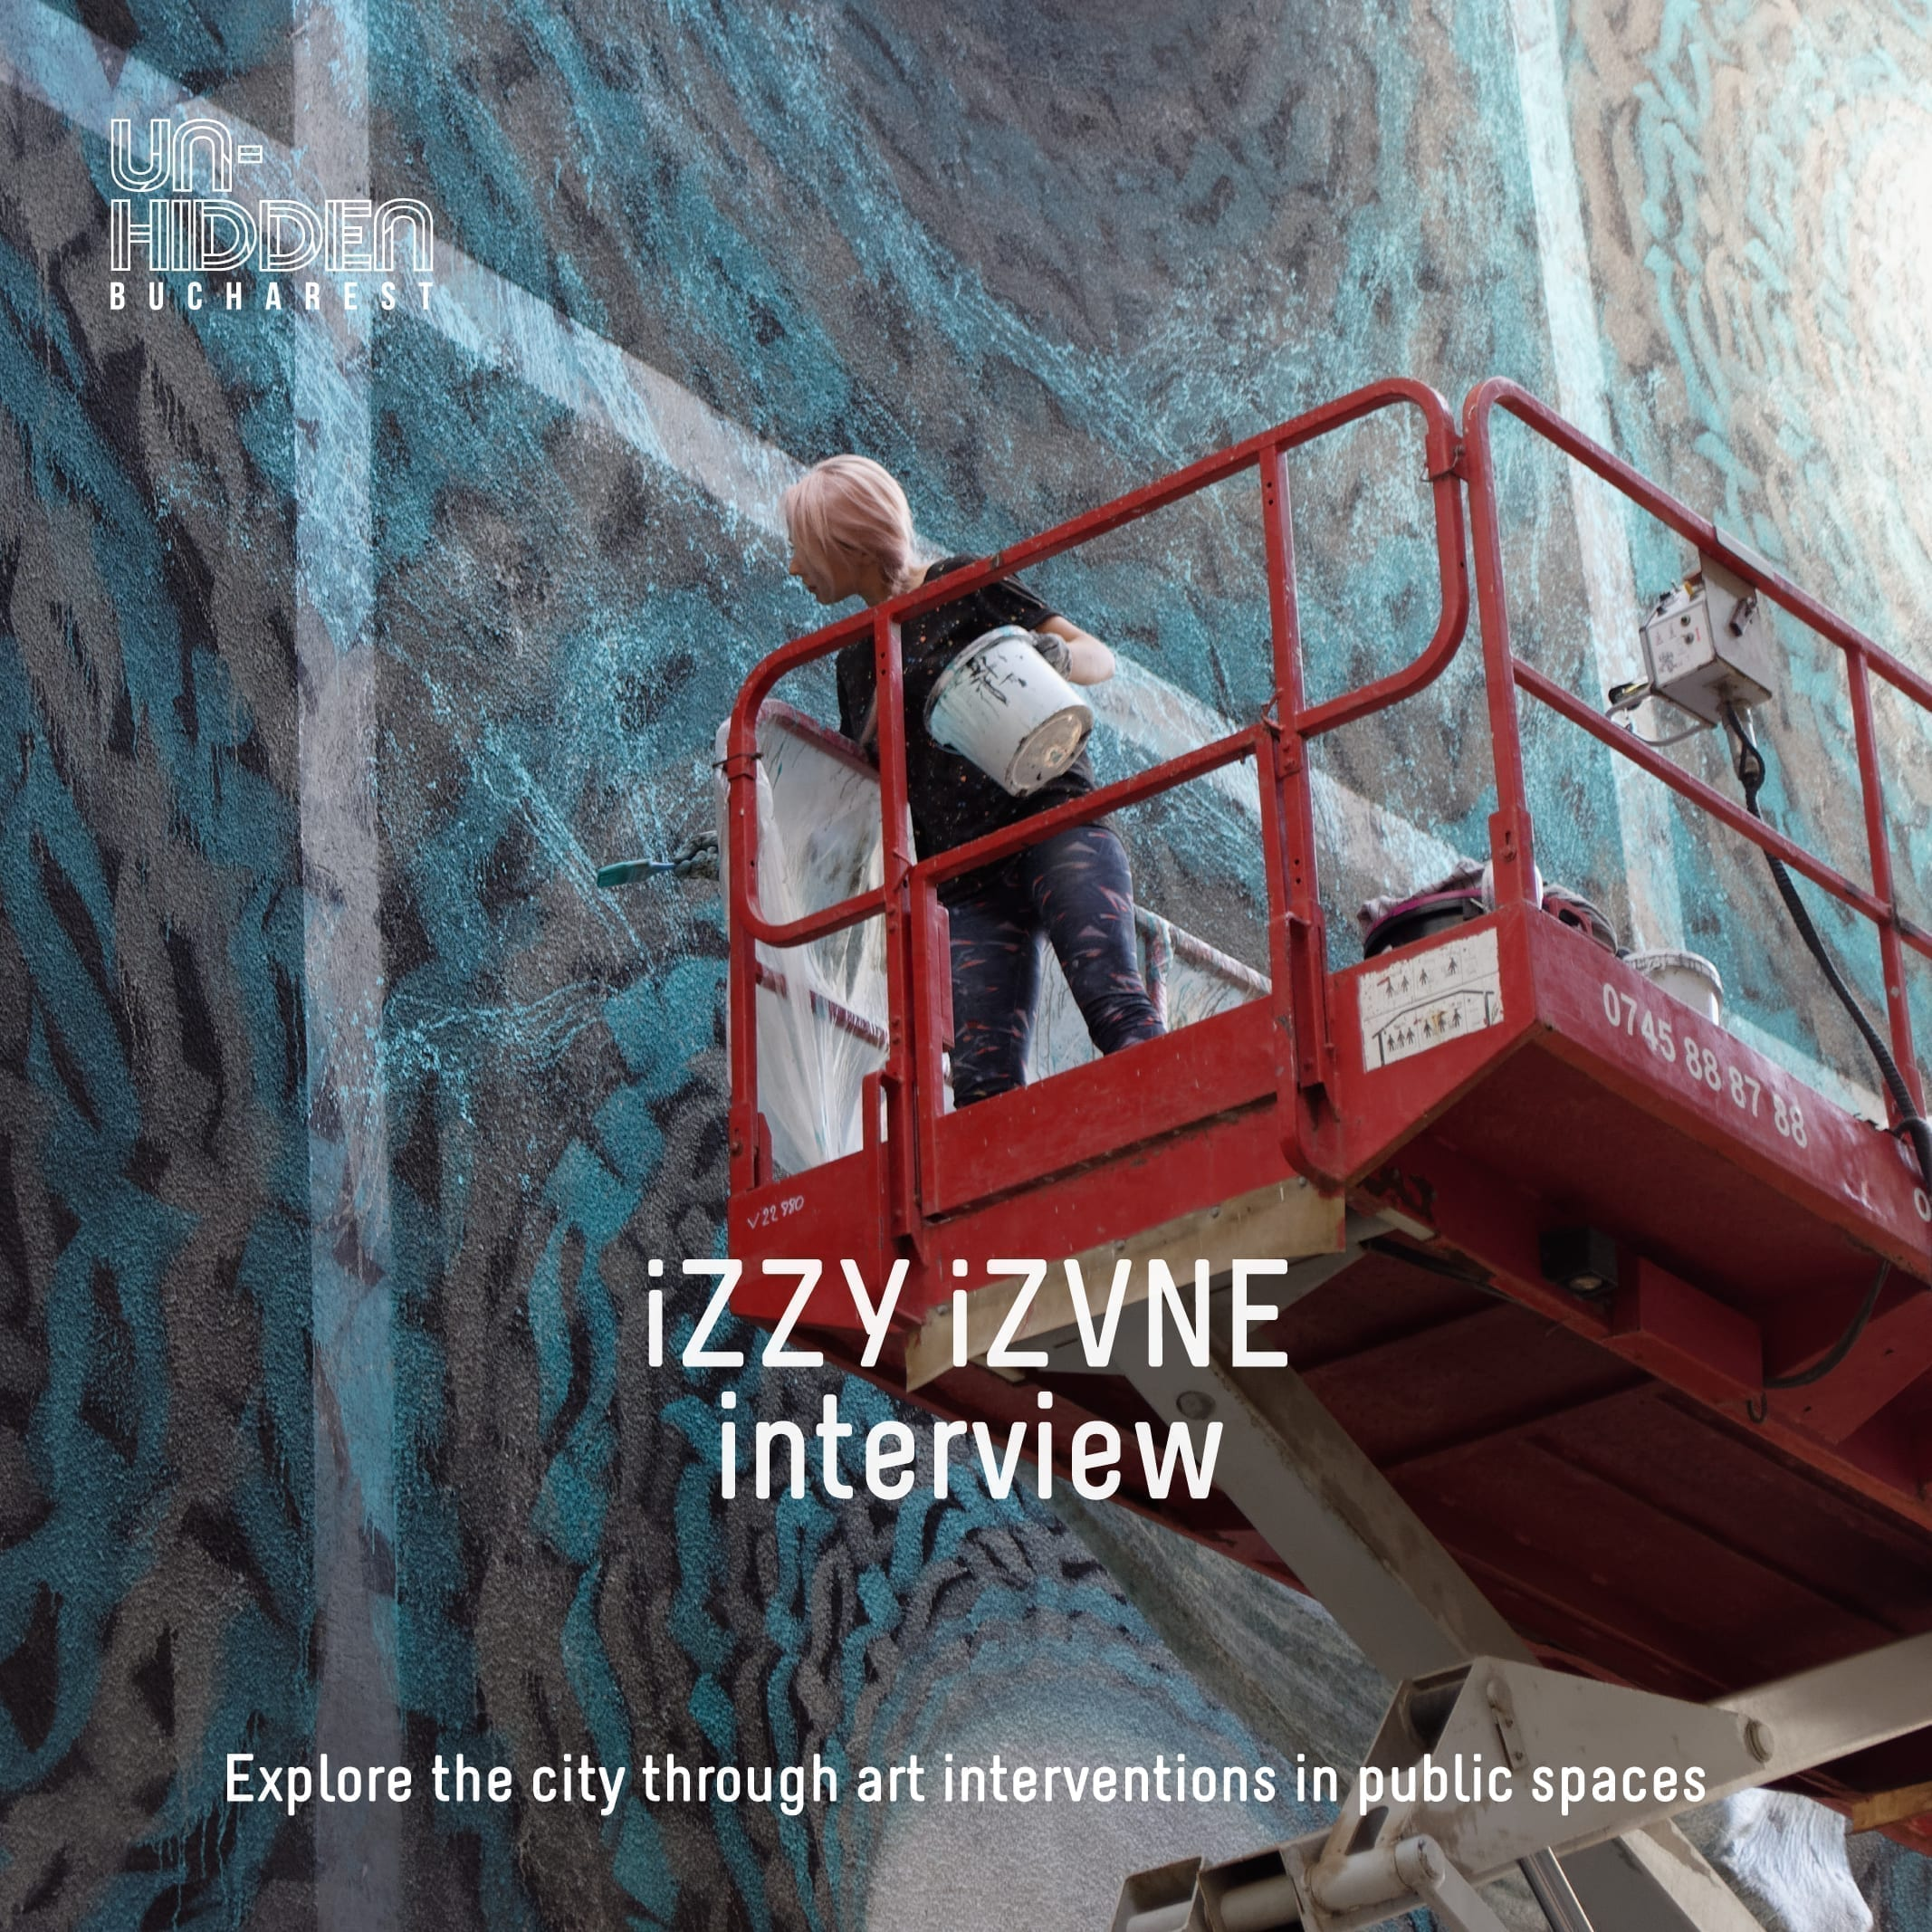 Interview with iZZY iZVNE - Un-hidden Bucharest